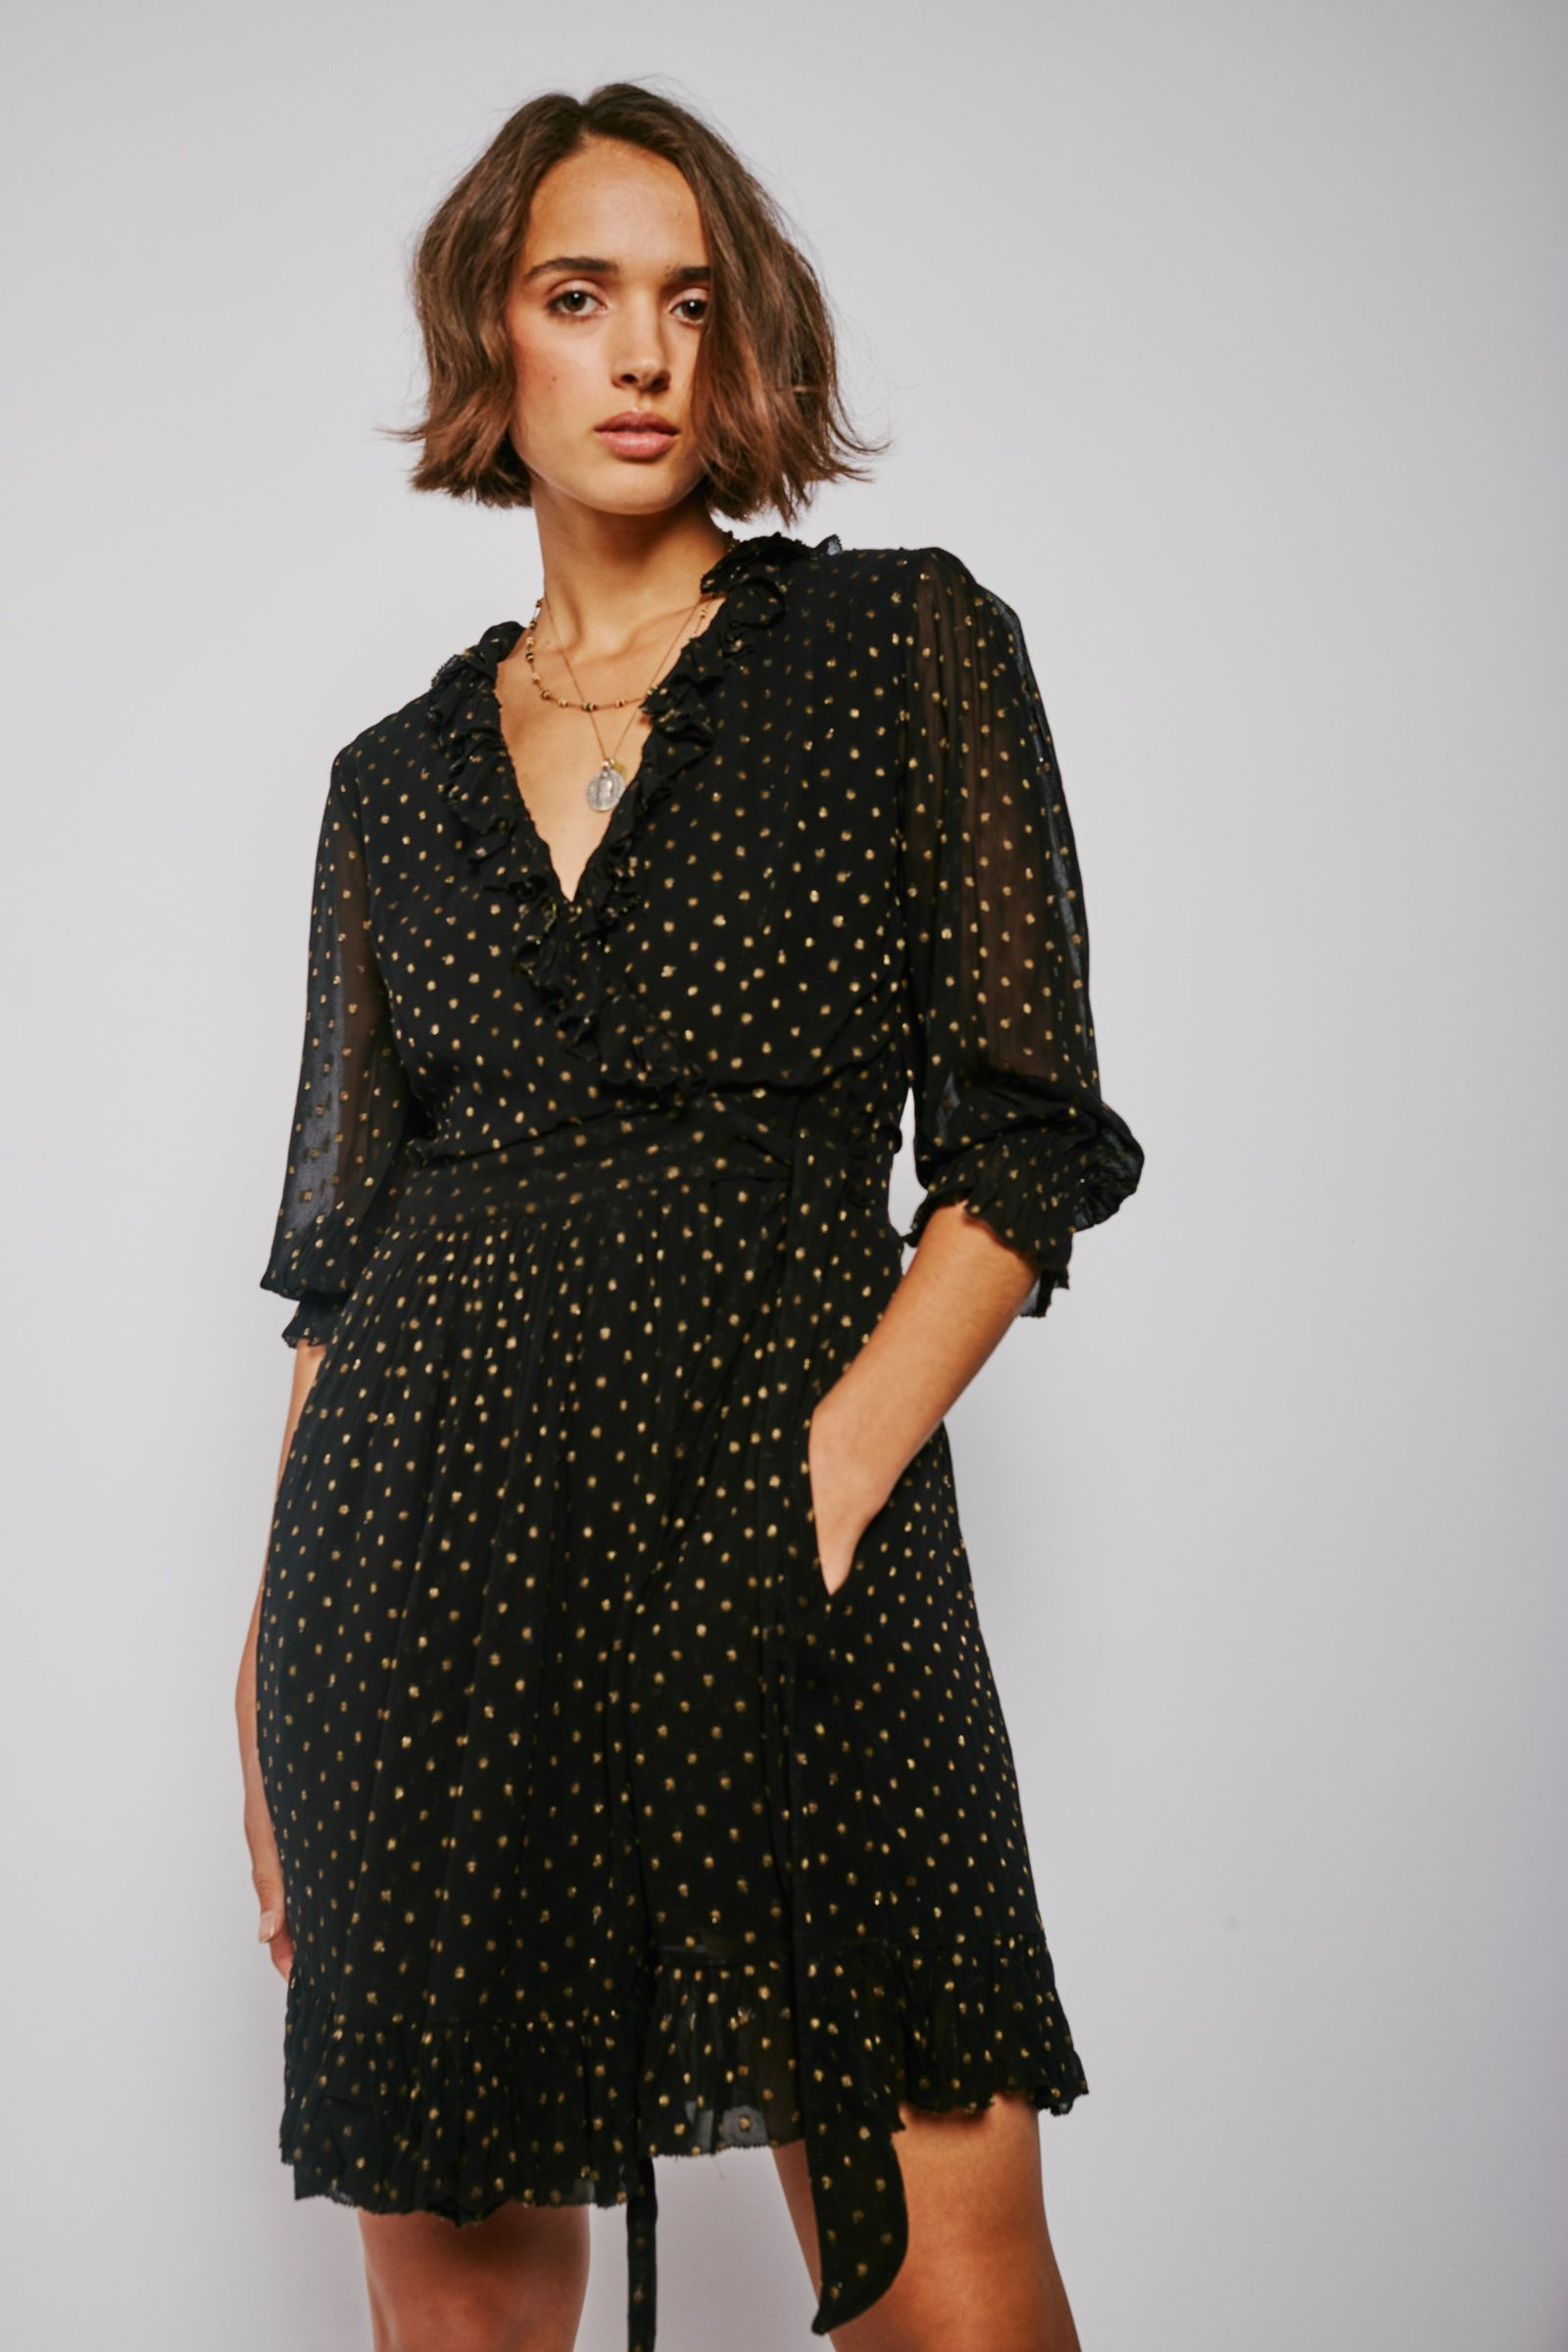 Image 2 du produit Rustica Dots Dress